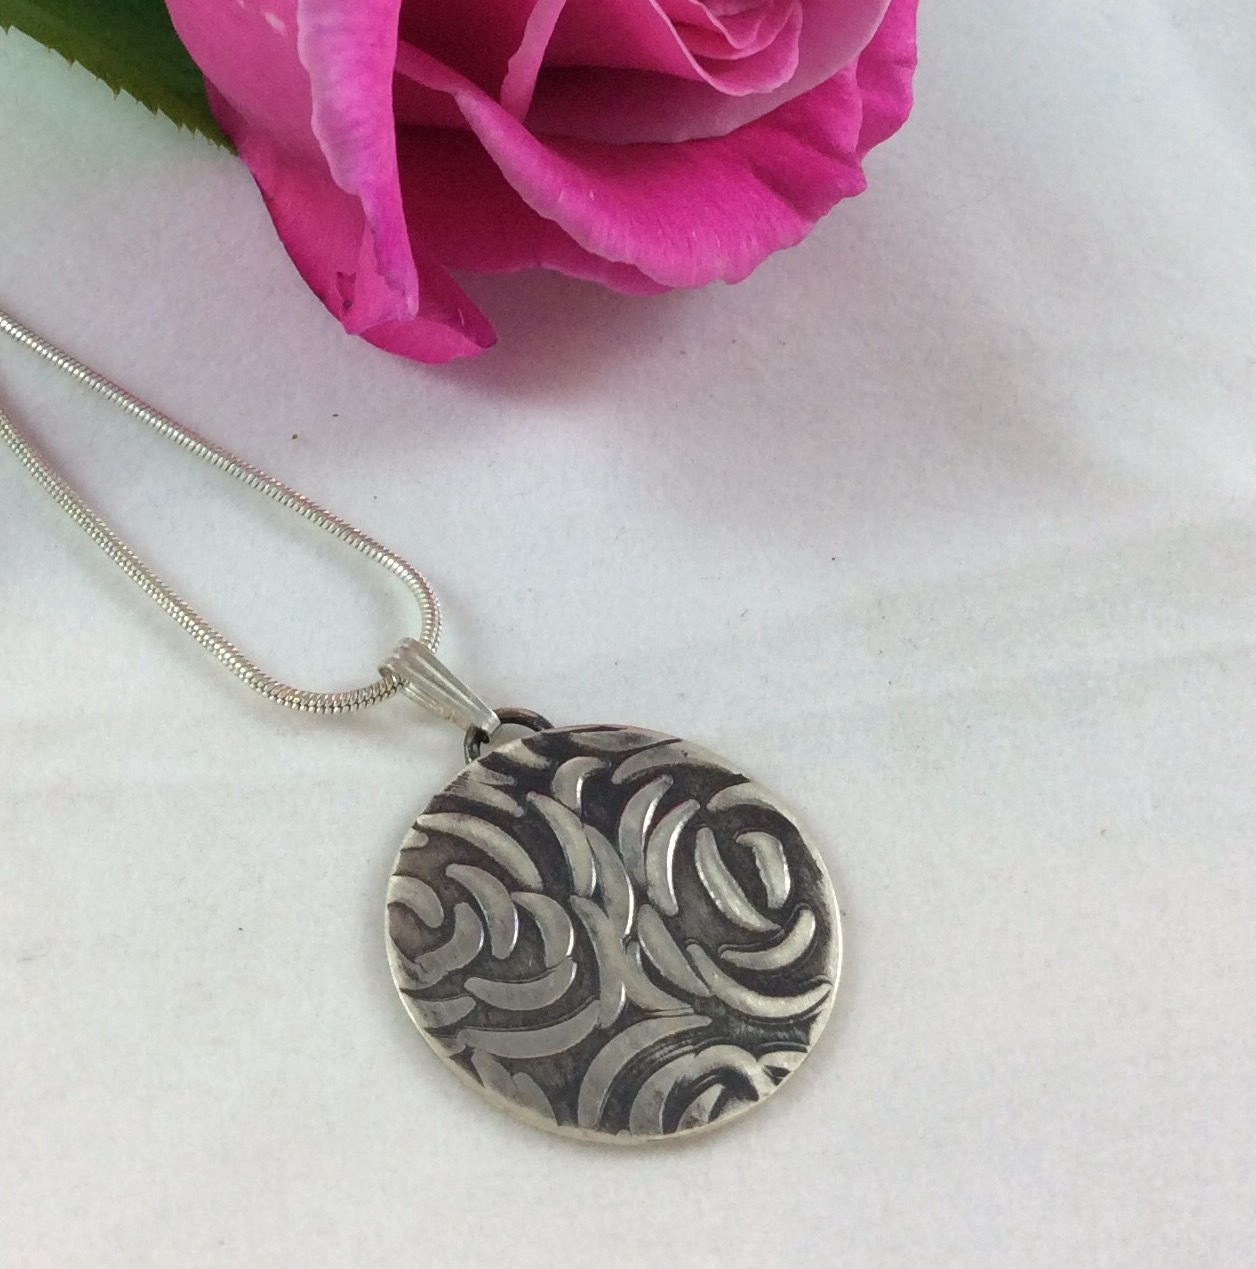 Upcycled Sterling Silver Embossed Pendant